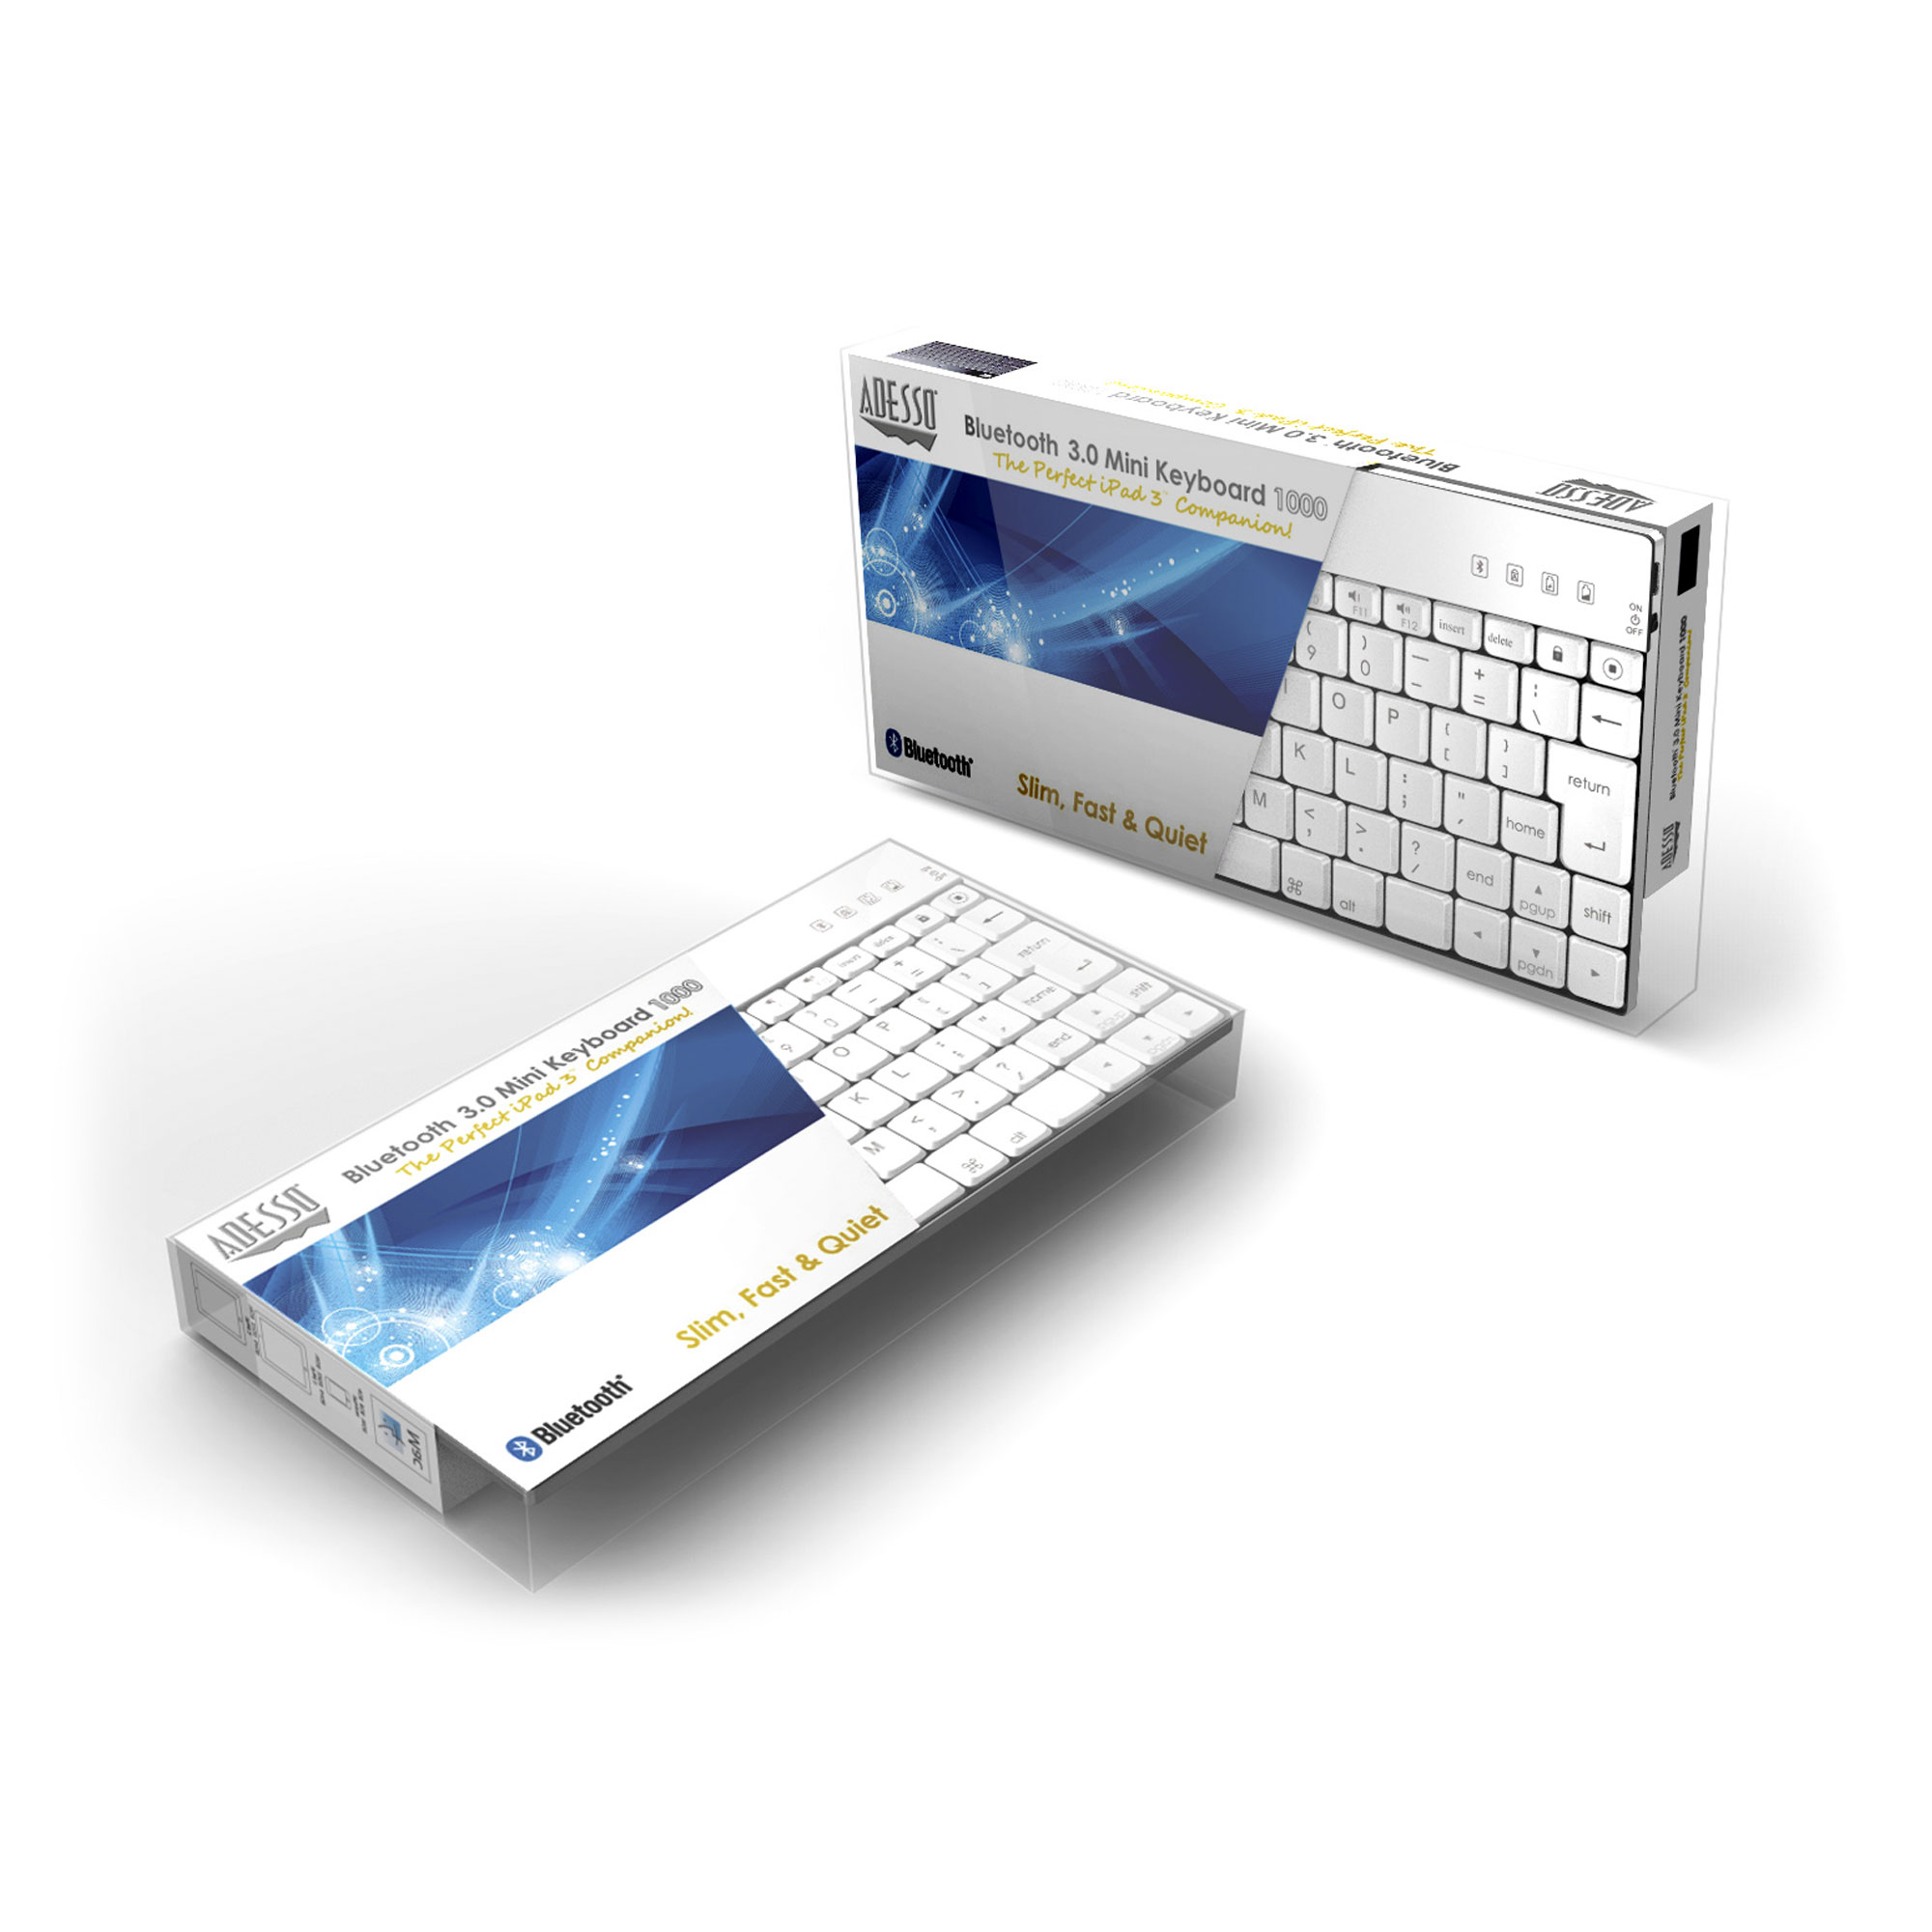 Wkb 1000bw Bluetooth Mini Keyboard 1000 For Ipad White Adesso Inc Your Input Device Specialist